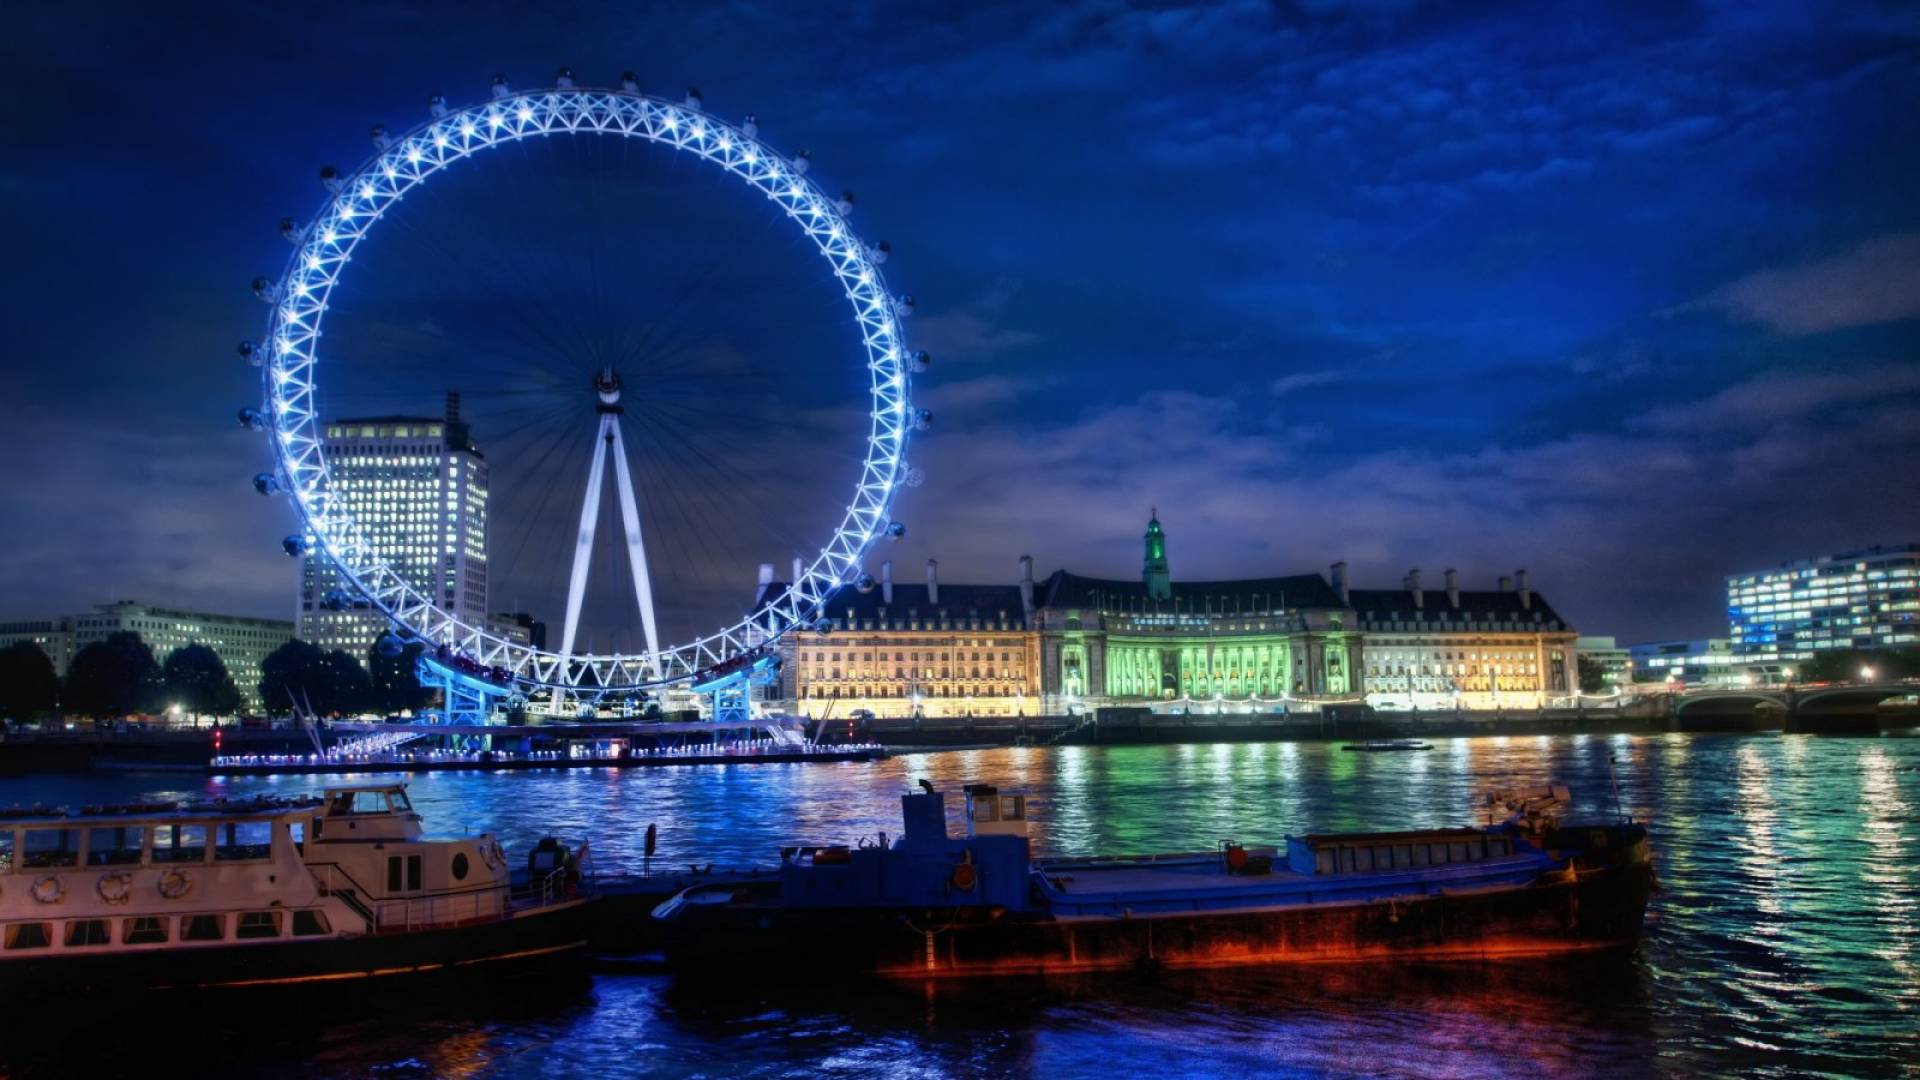 London Eye 1920x1080 Hd Fondoswiki Com